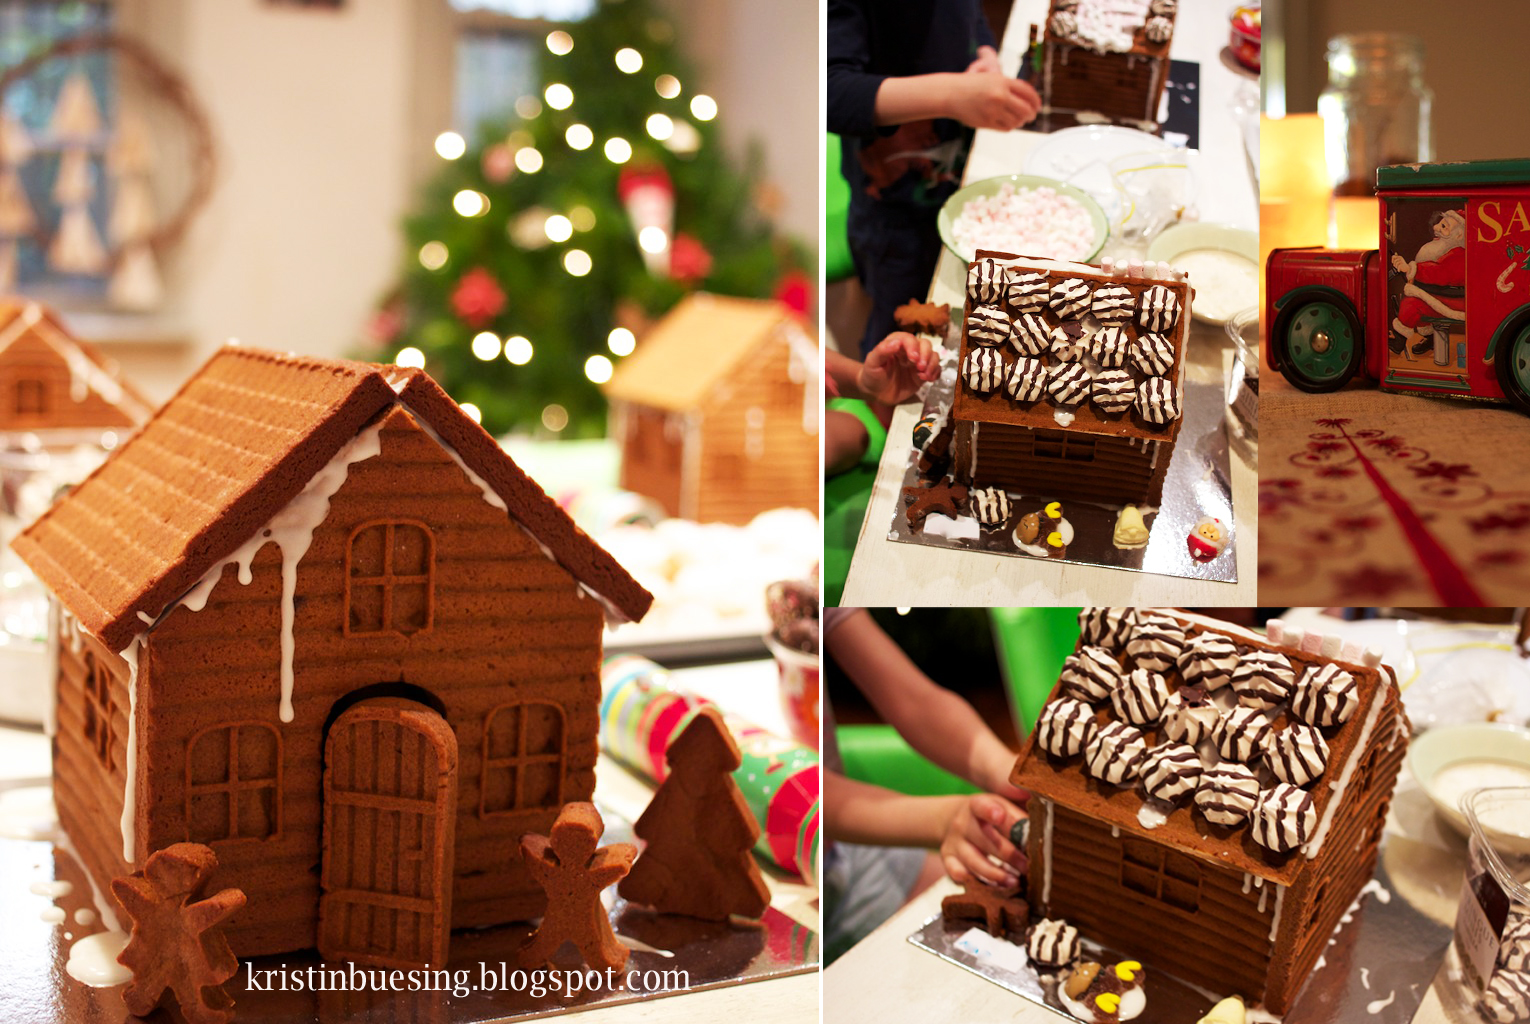 Fabulous German Gingerbread House Christmas Decorations 1530 x 1024 · 1015 kB · jpeg